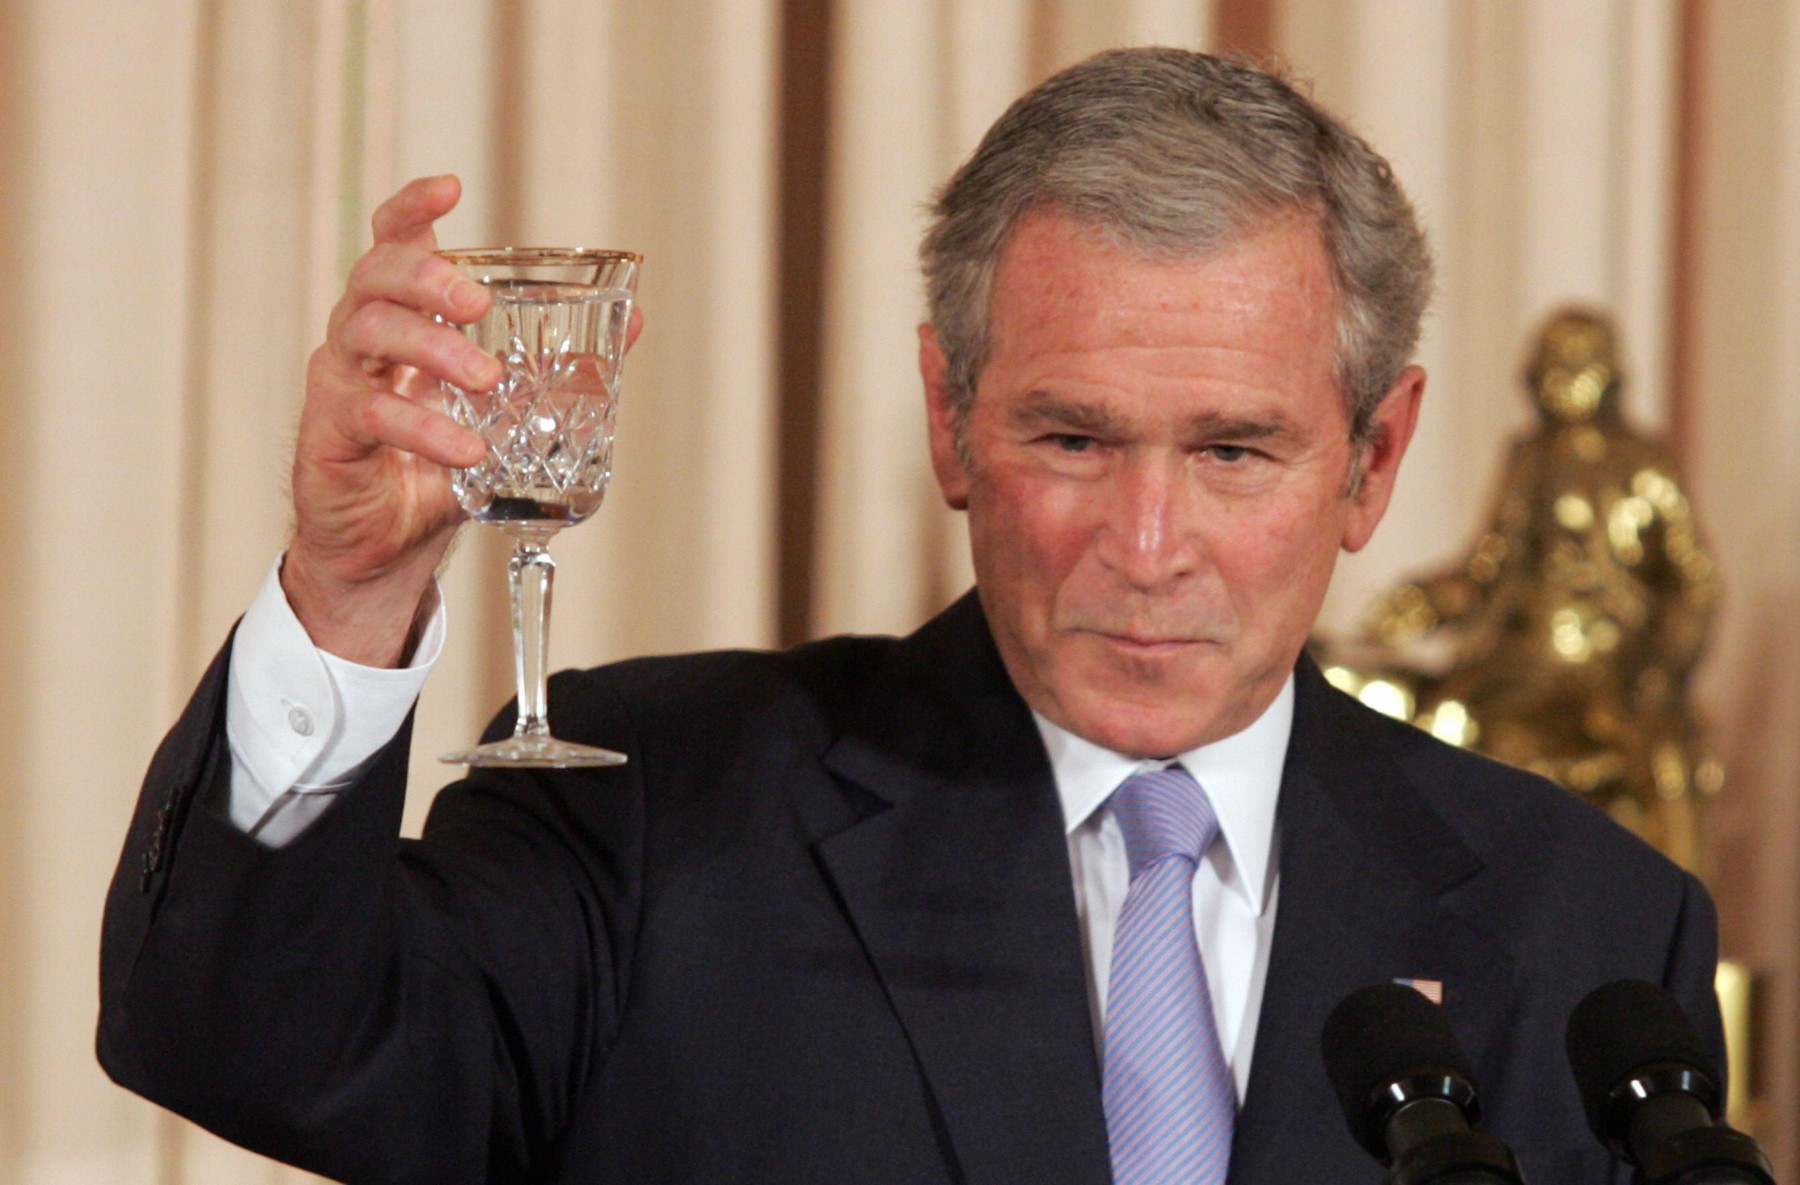 The Most Expensive TV Adverts ever featuring George W Bush